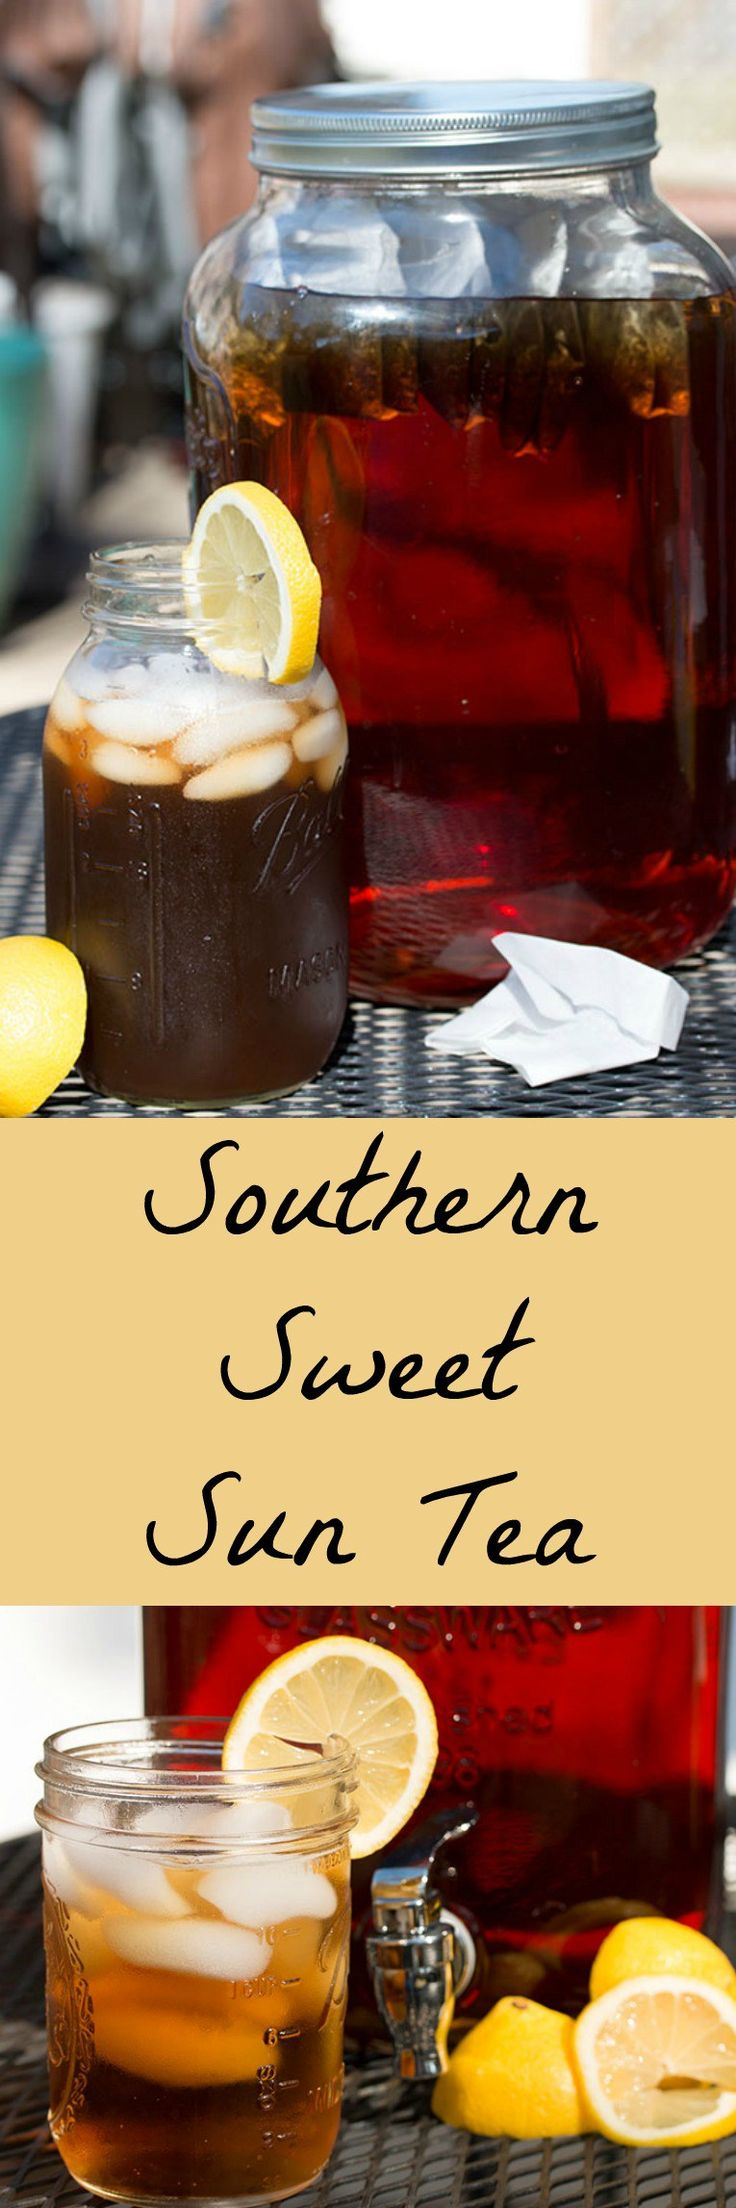 Sweet tea is as southern as it gets! This one is sun kissed!